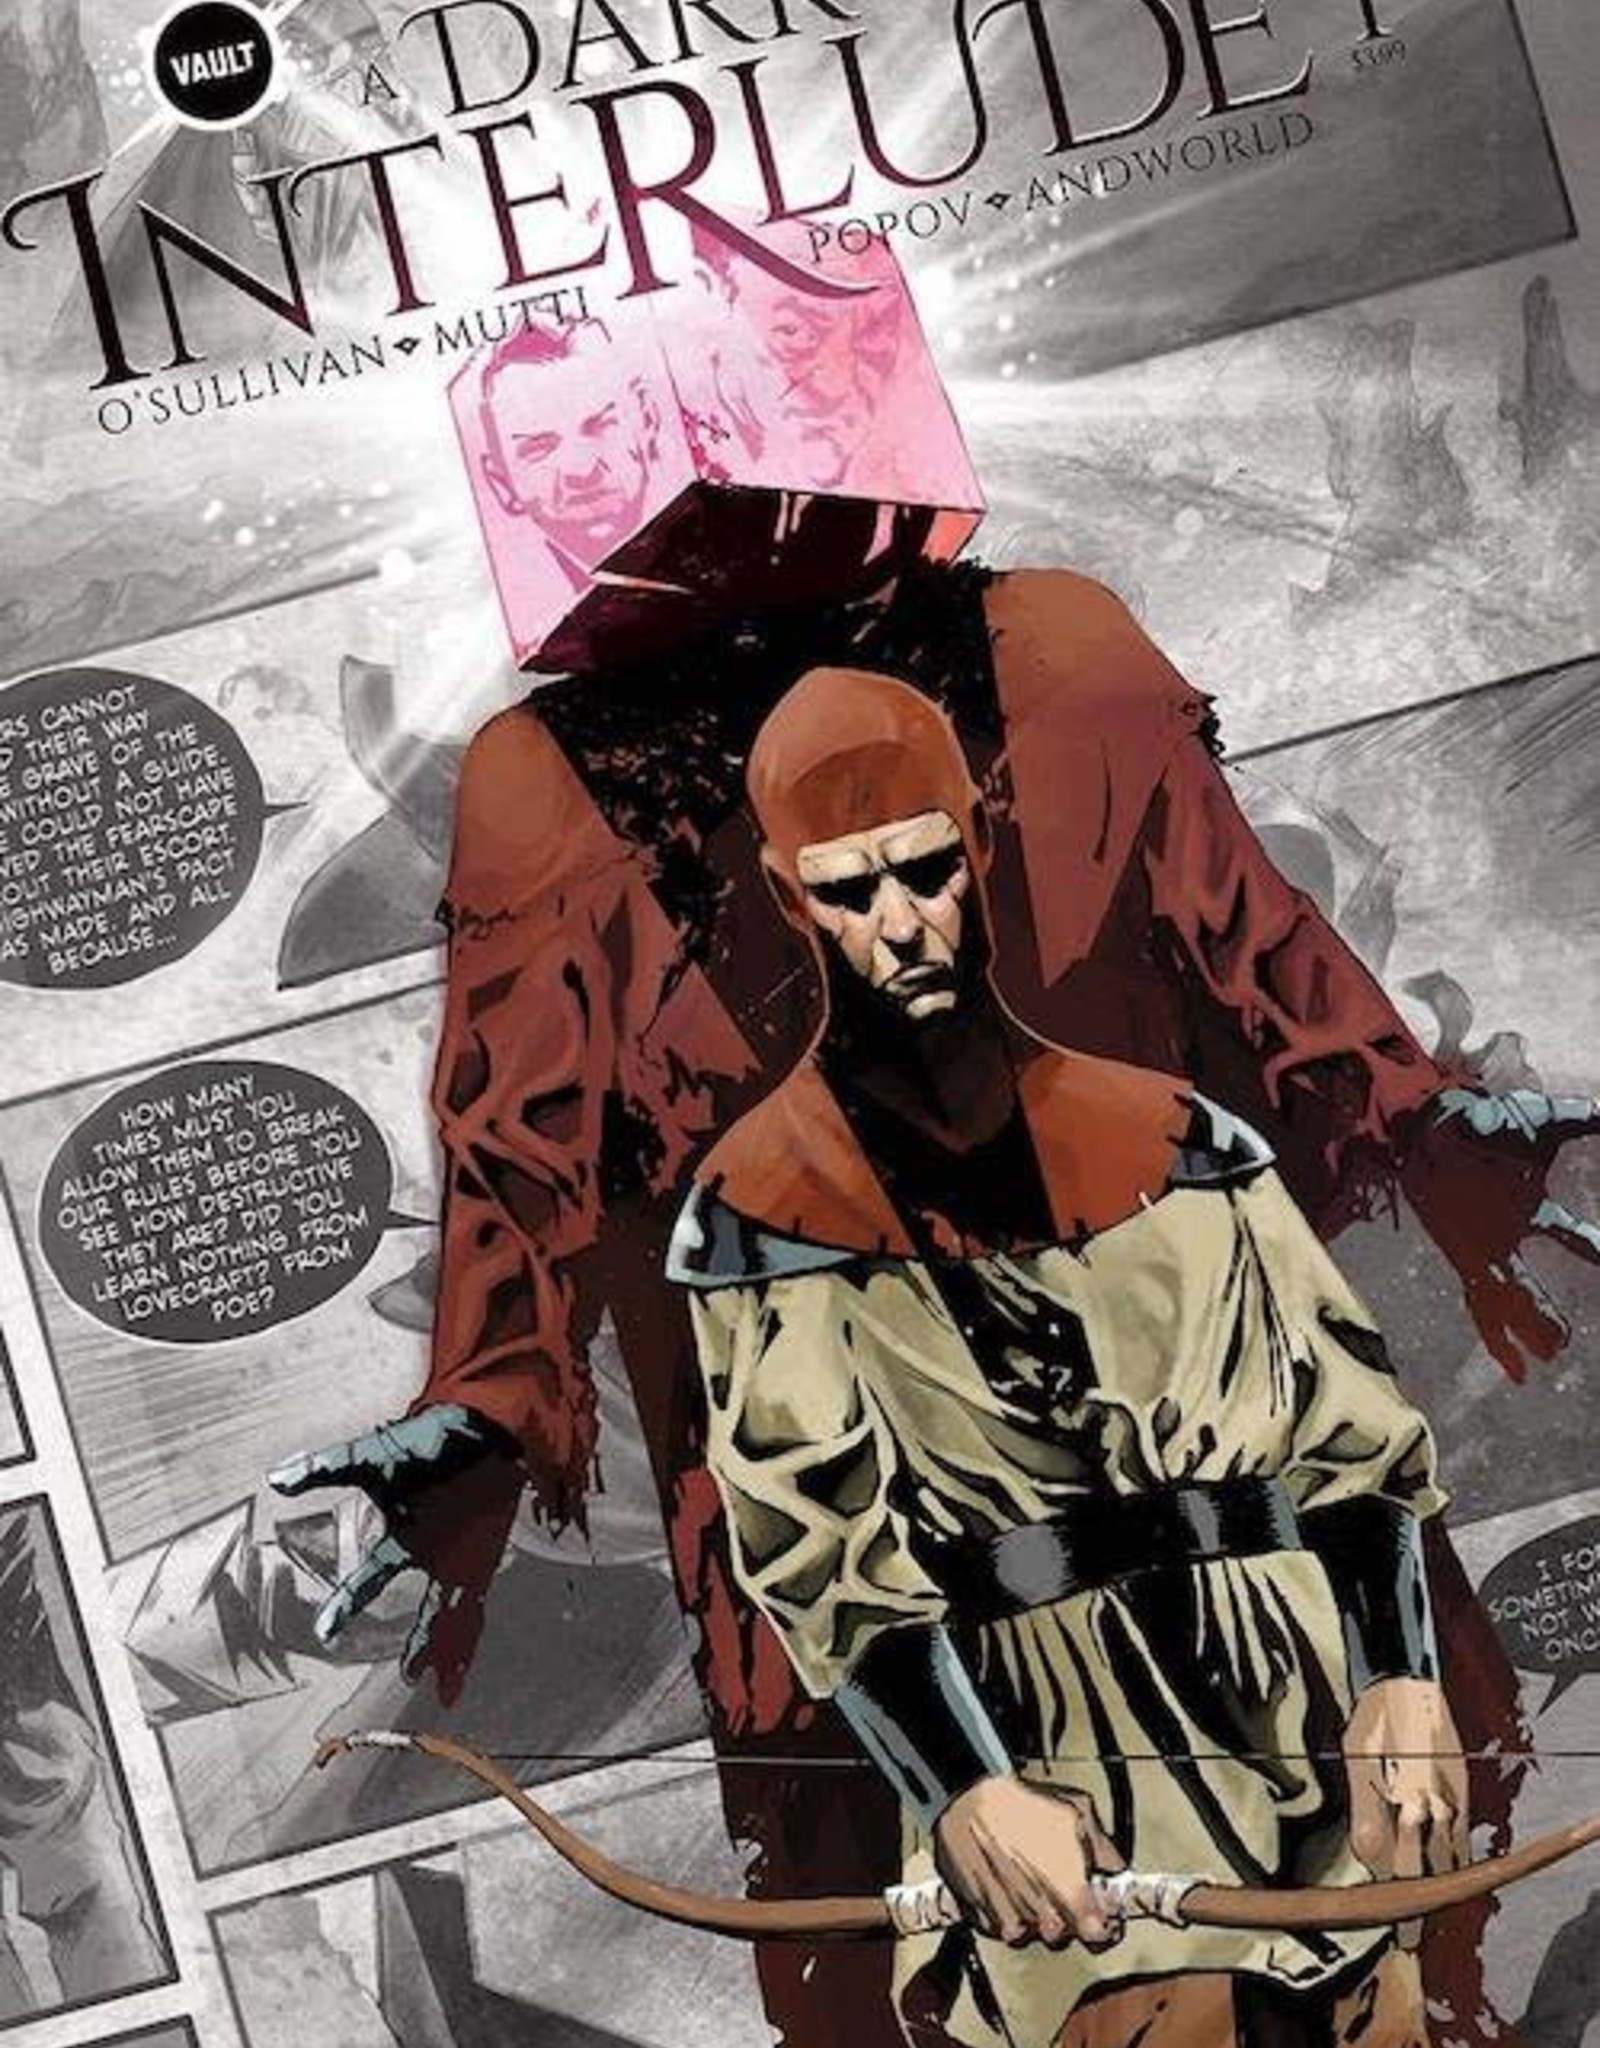 Vault Comics Dark Interlude #1 Cvr B Daniel Gooden